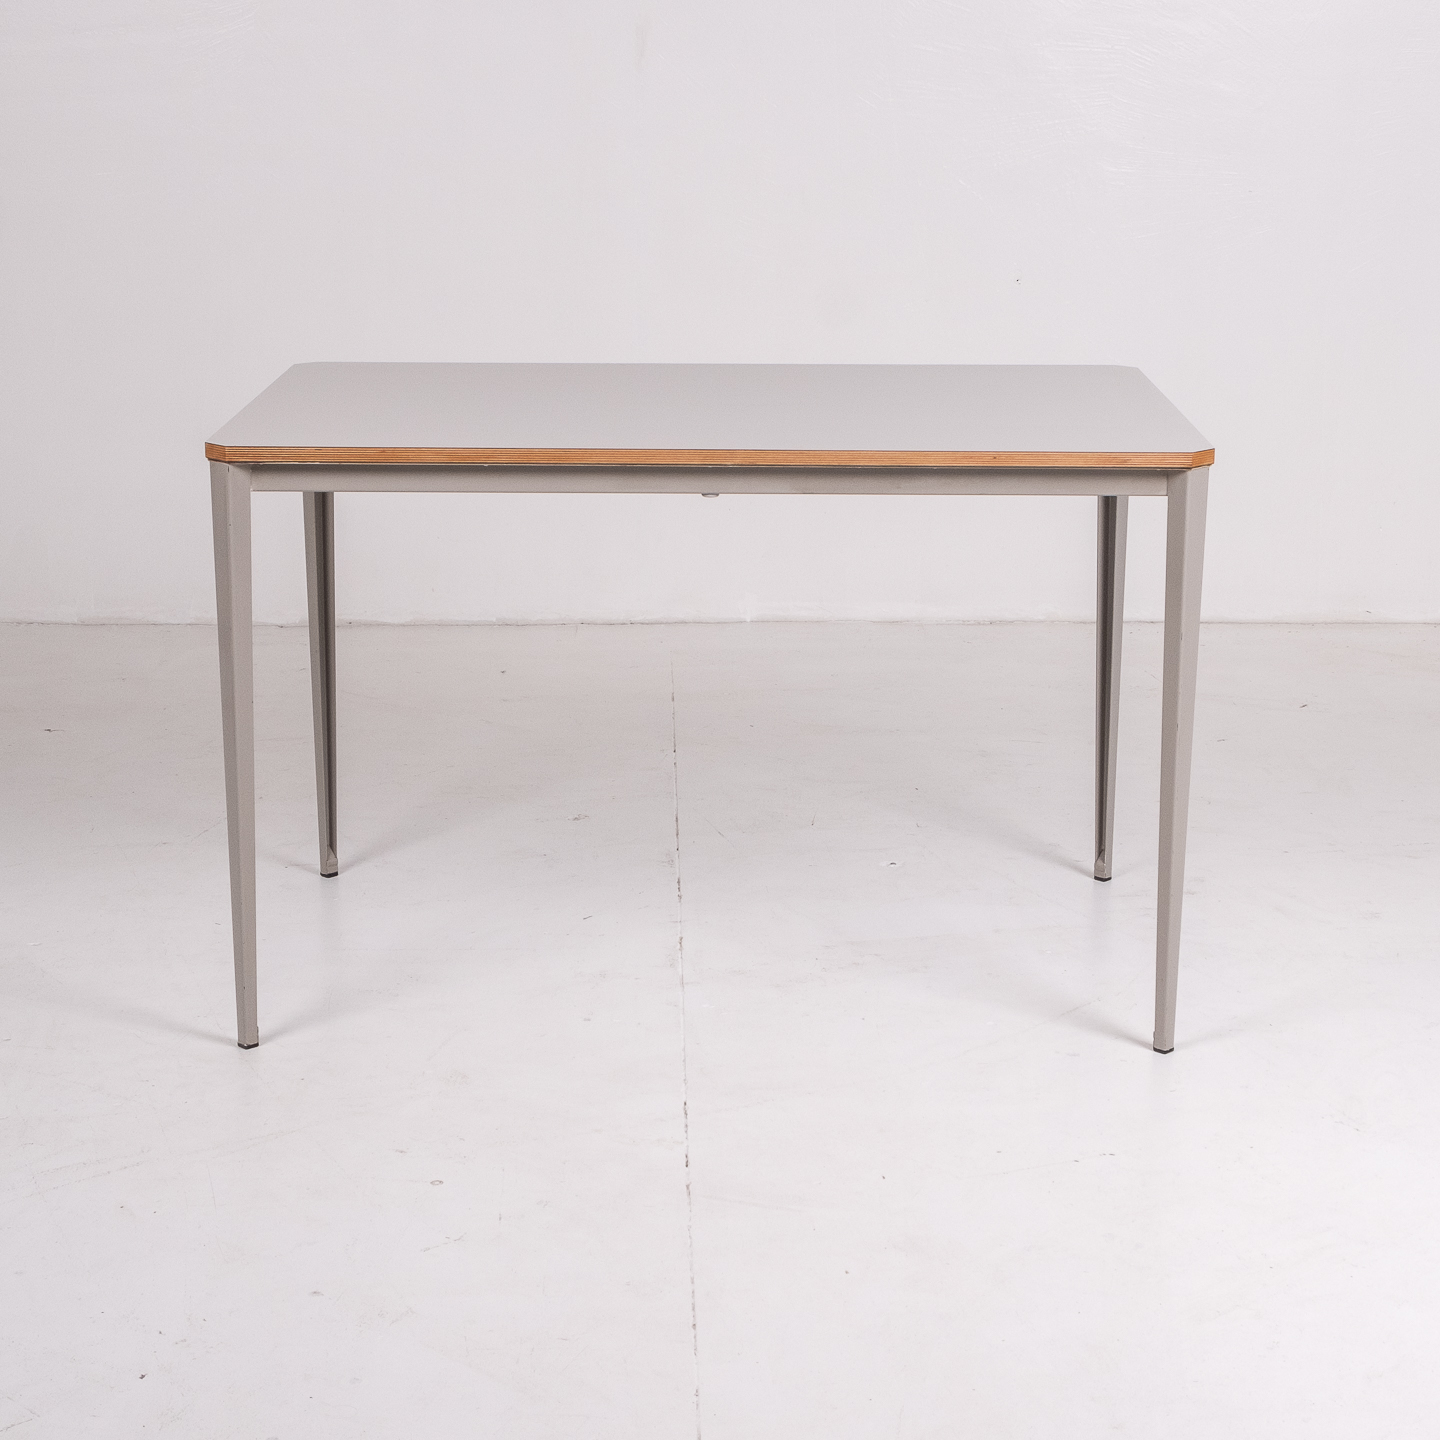 Recent Table By Wim Rietveld For Ahrend De Cirkel With Grey Steel Base, 1960s, The Netherlands63